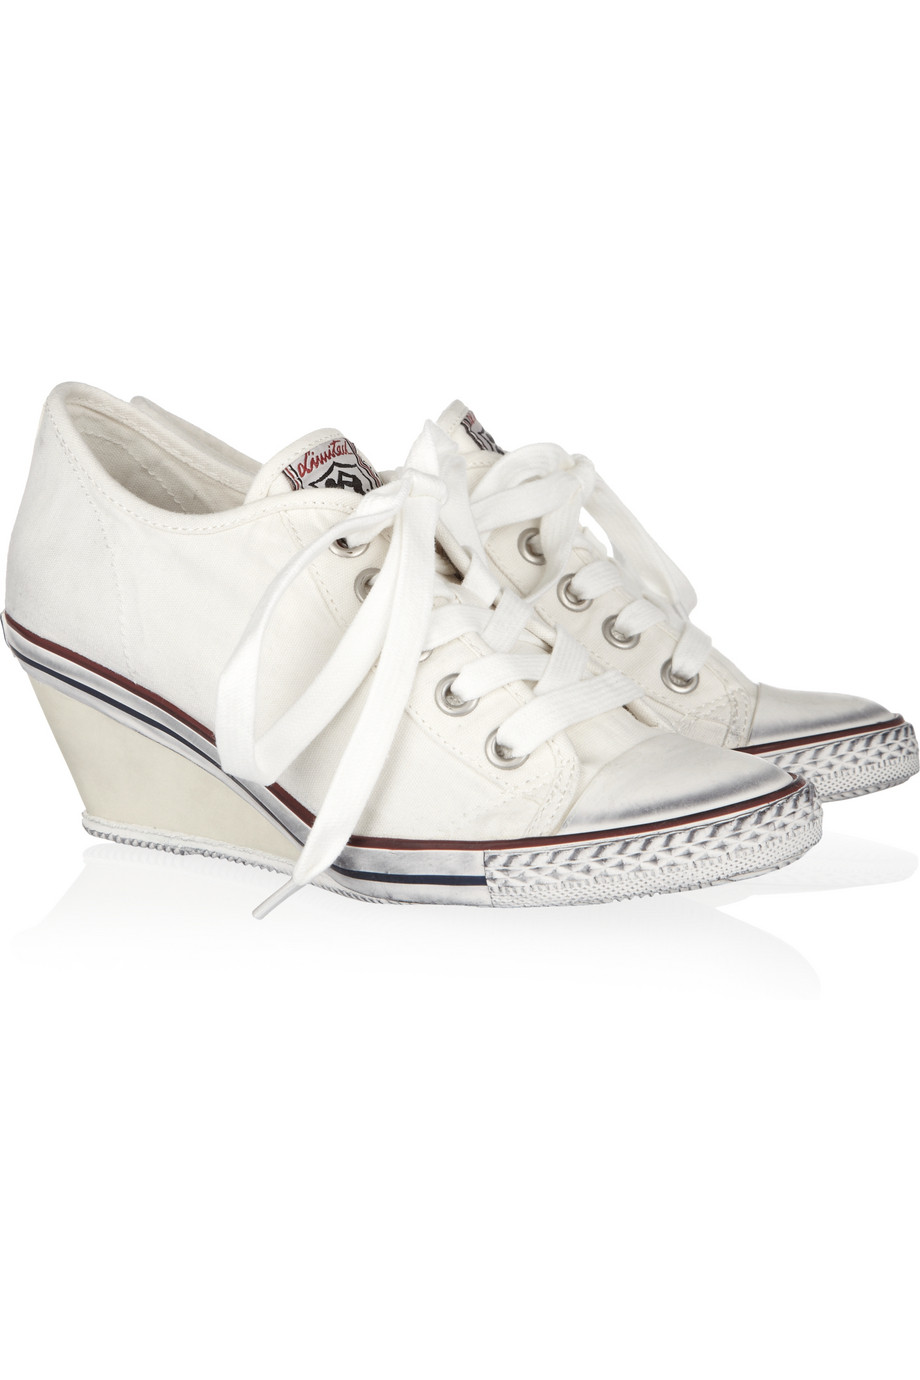 Ash Ginger Canvas Wedge Sneakers in White | Lyst